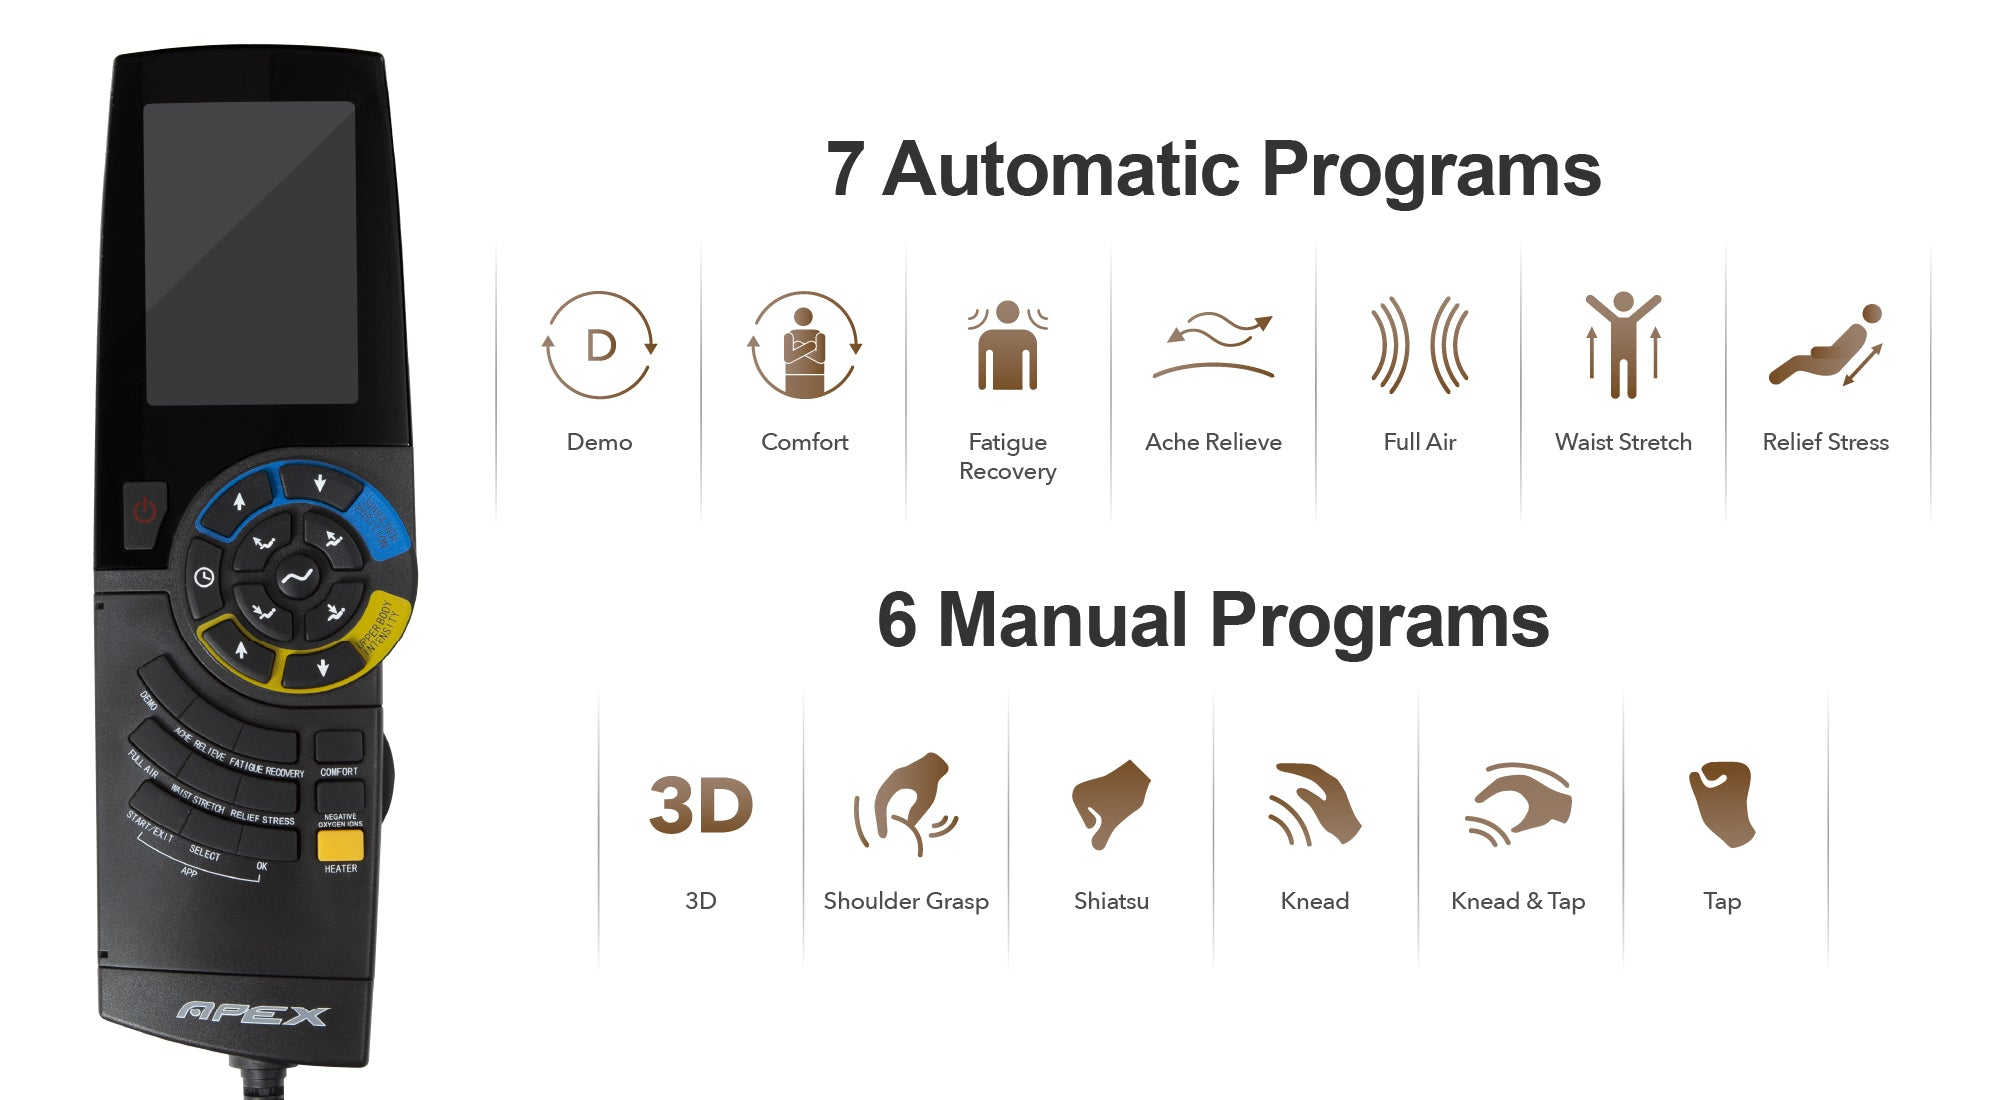 7 Automatic Programs, 6 Manual Programs